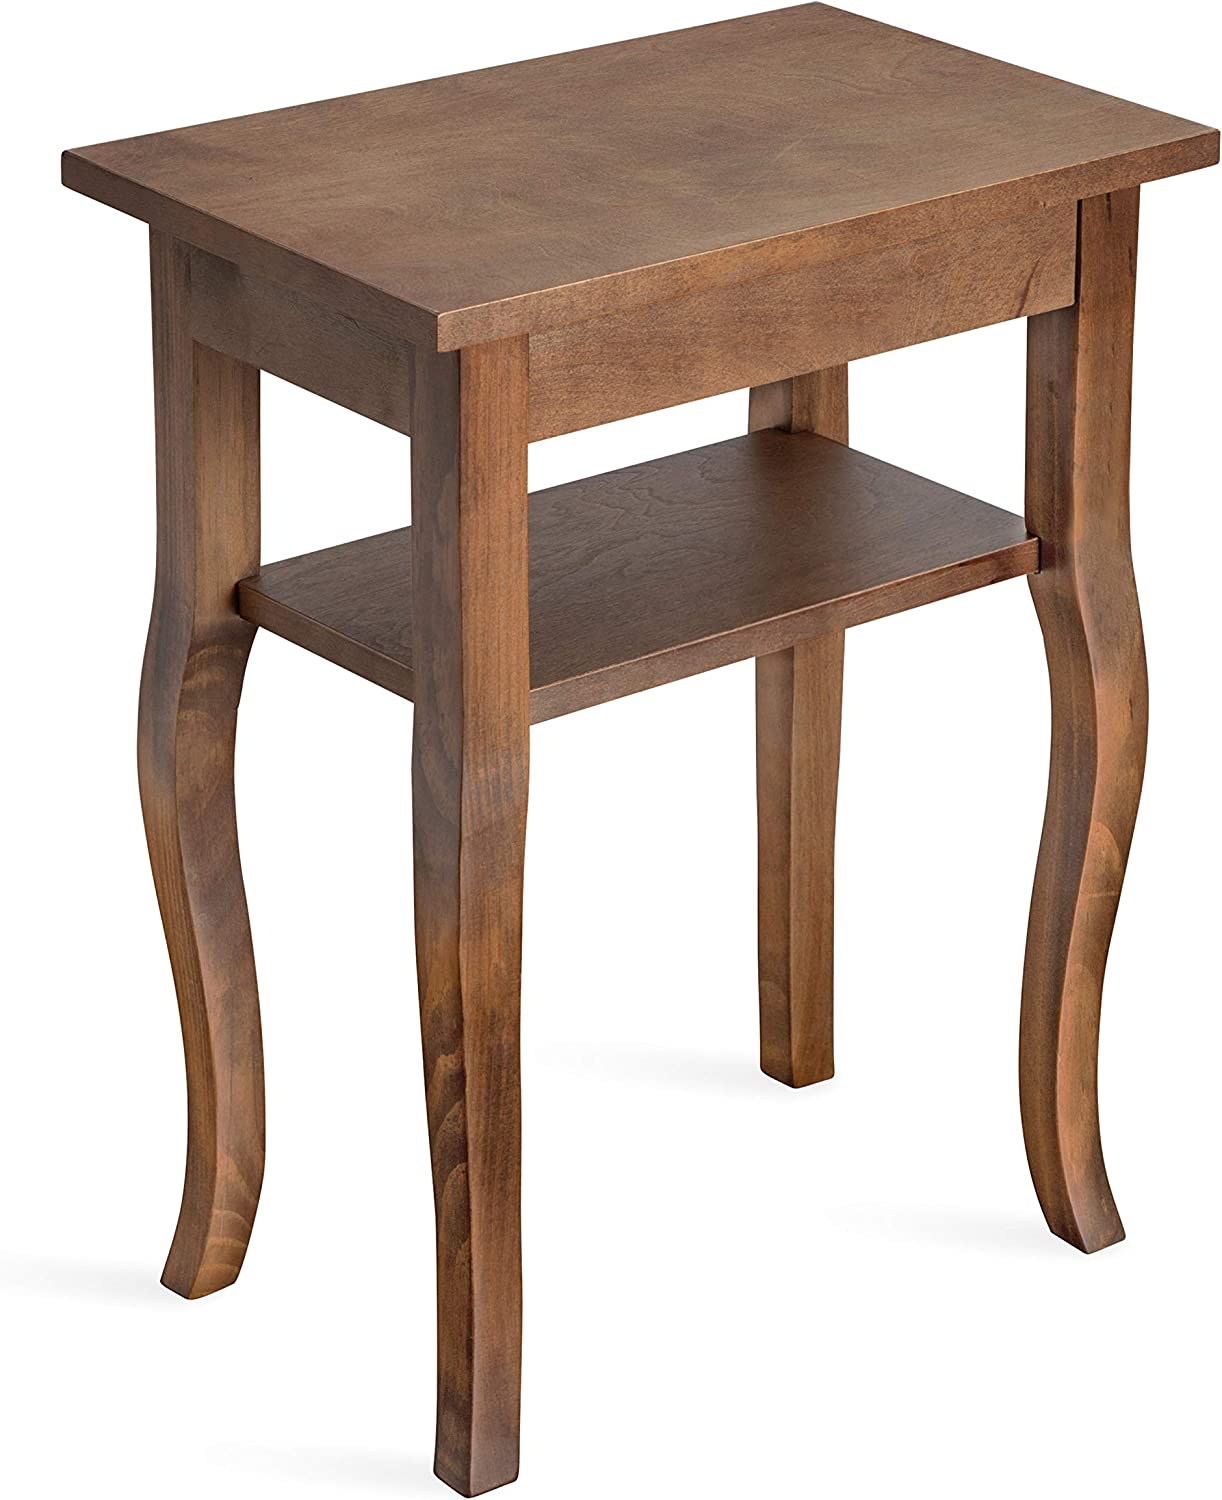 Kate and Laurel Lillian Wooden Side Table with Shelf, 18